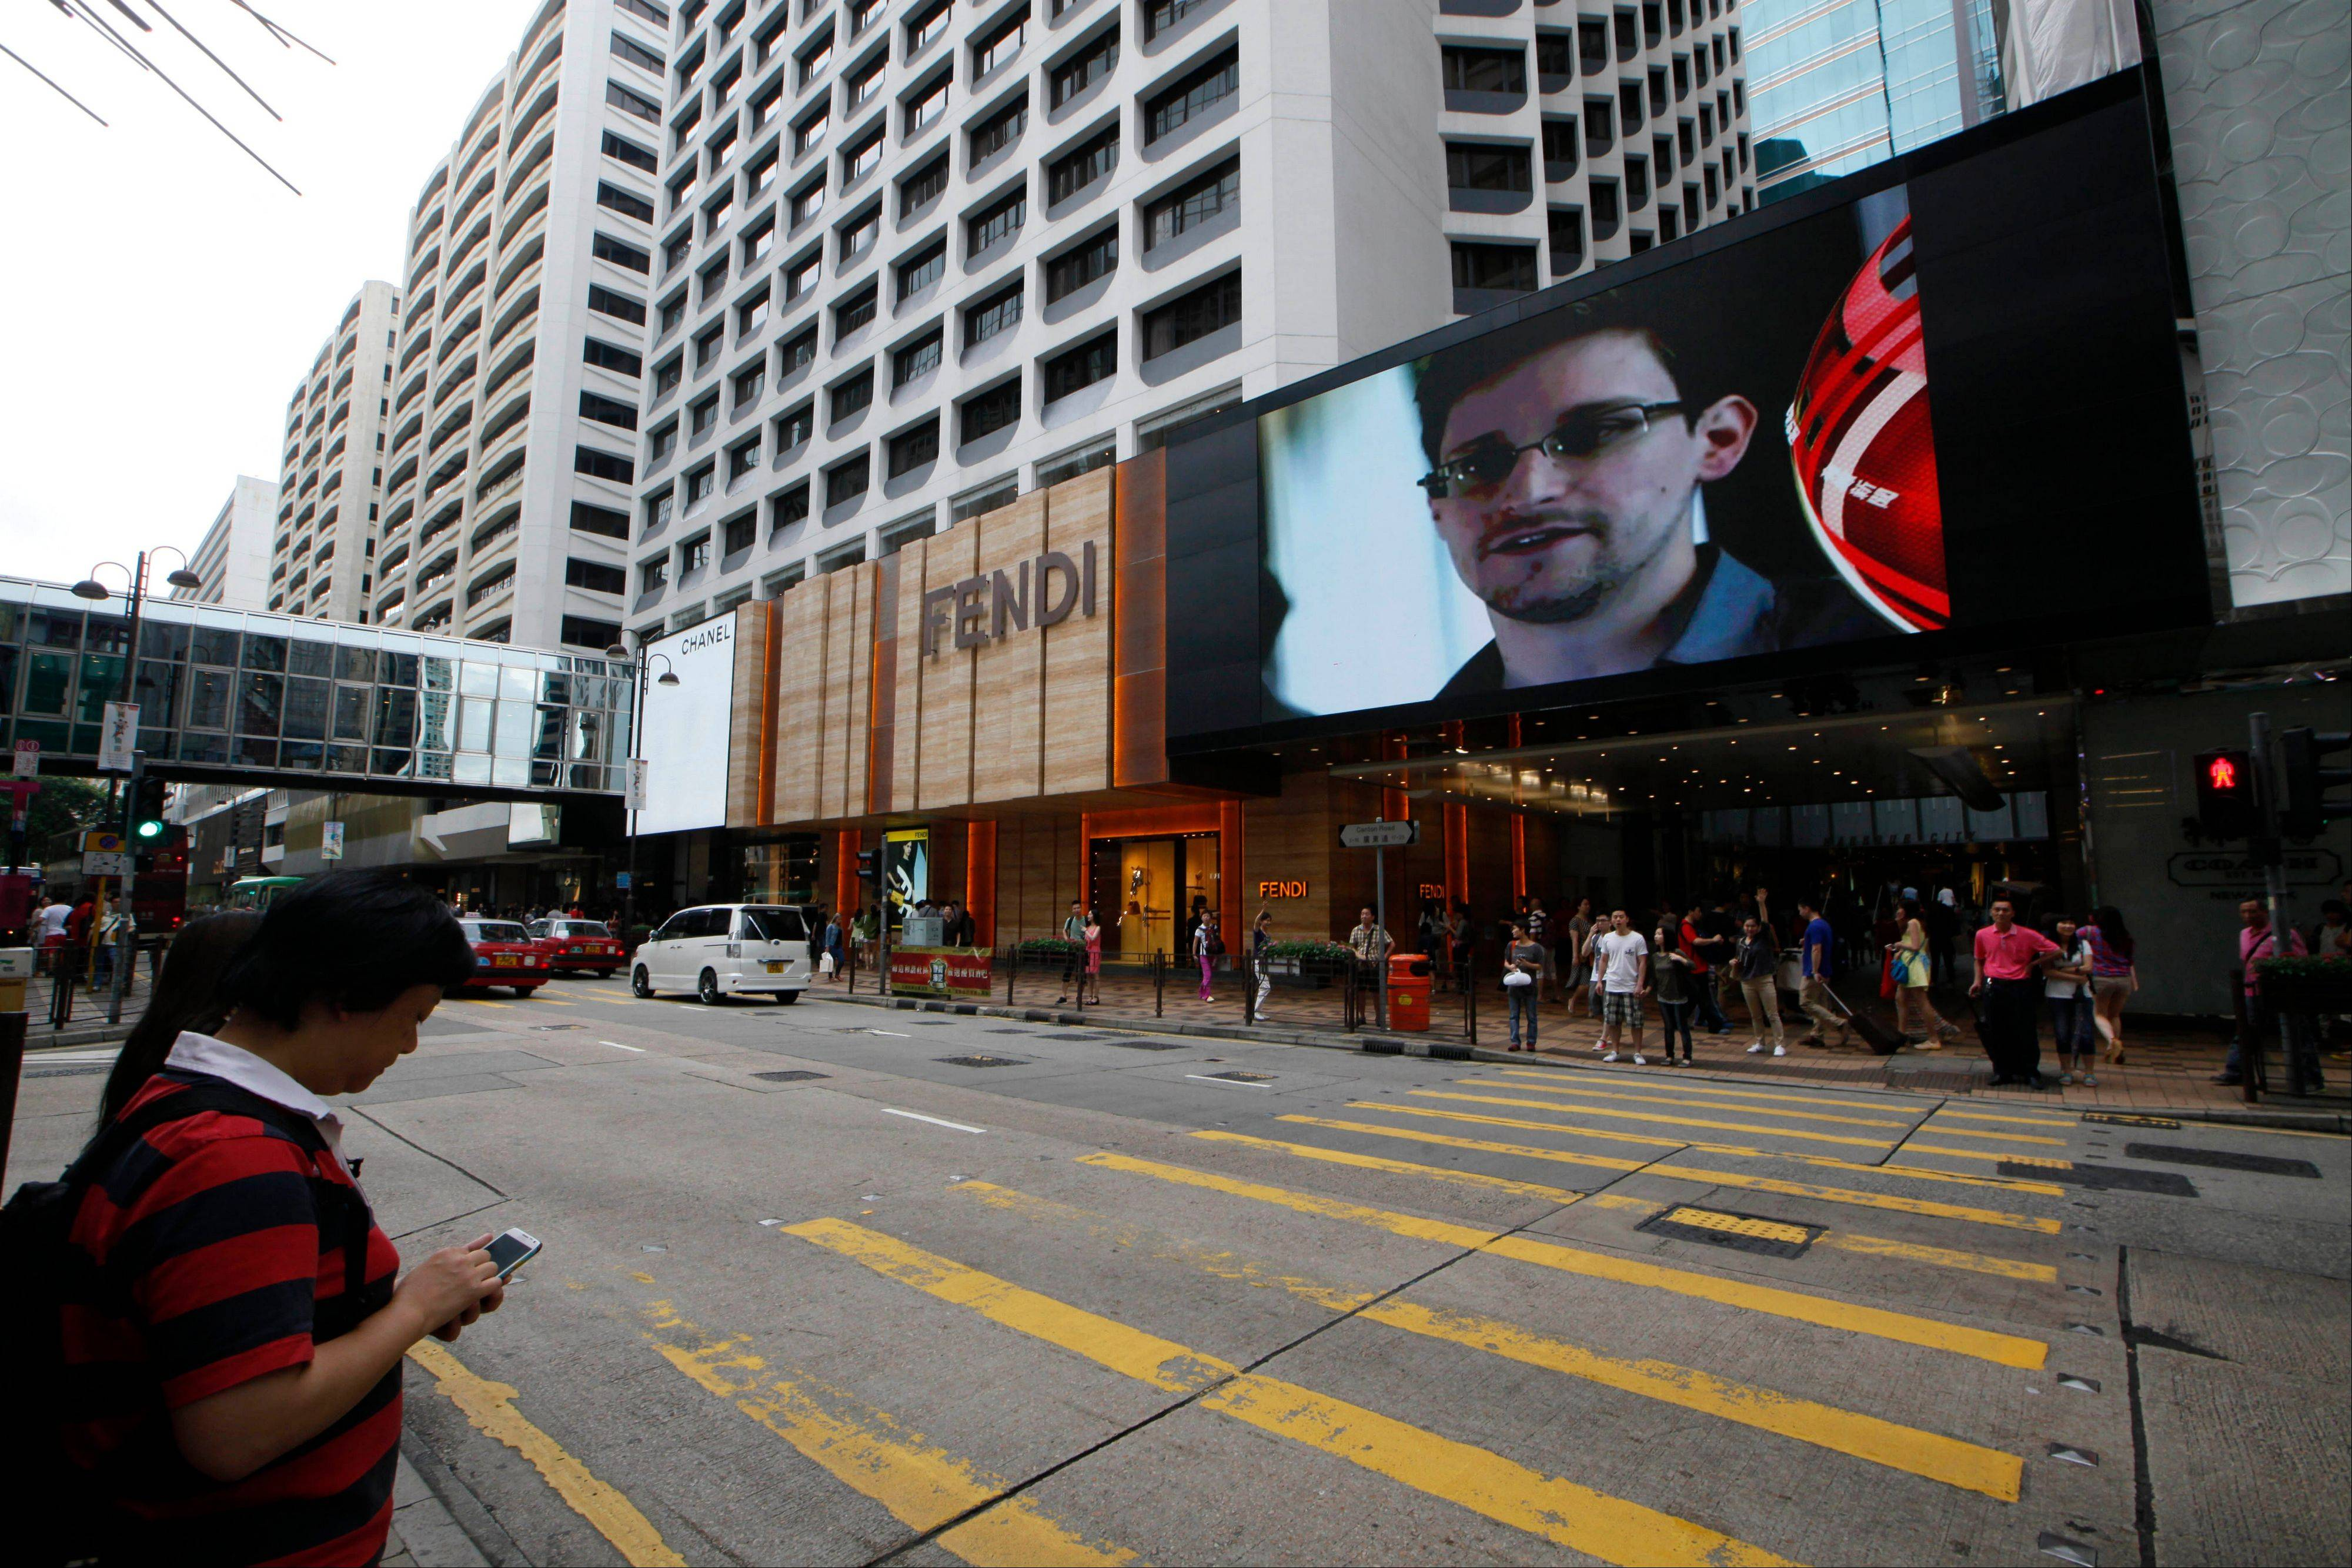 A TV screen shows a news report of Edward Snowden, a former CIA employee who leaked top-secret documents about sweeping U.S. surveillance programs, at a shopping mall Saturday in Hong Kong.